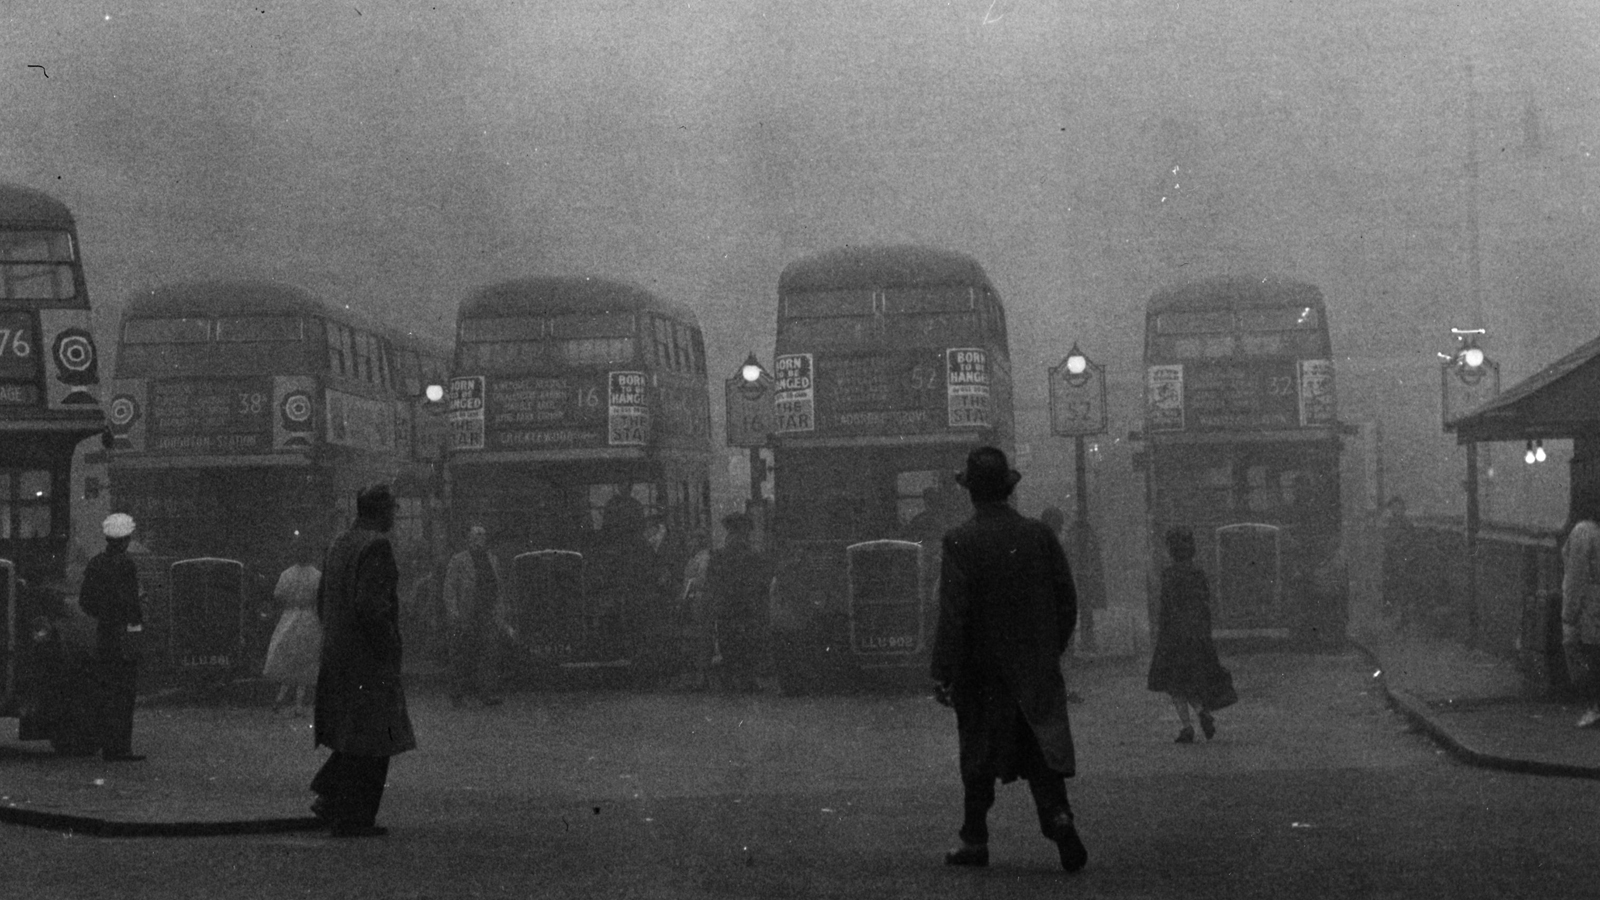 London buses in the smog, c. 1960